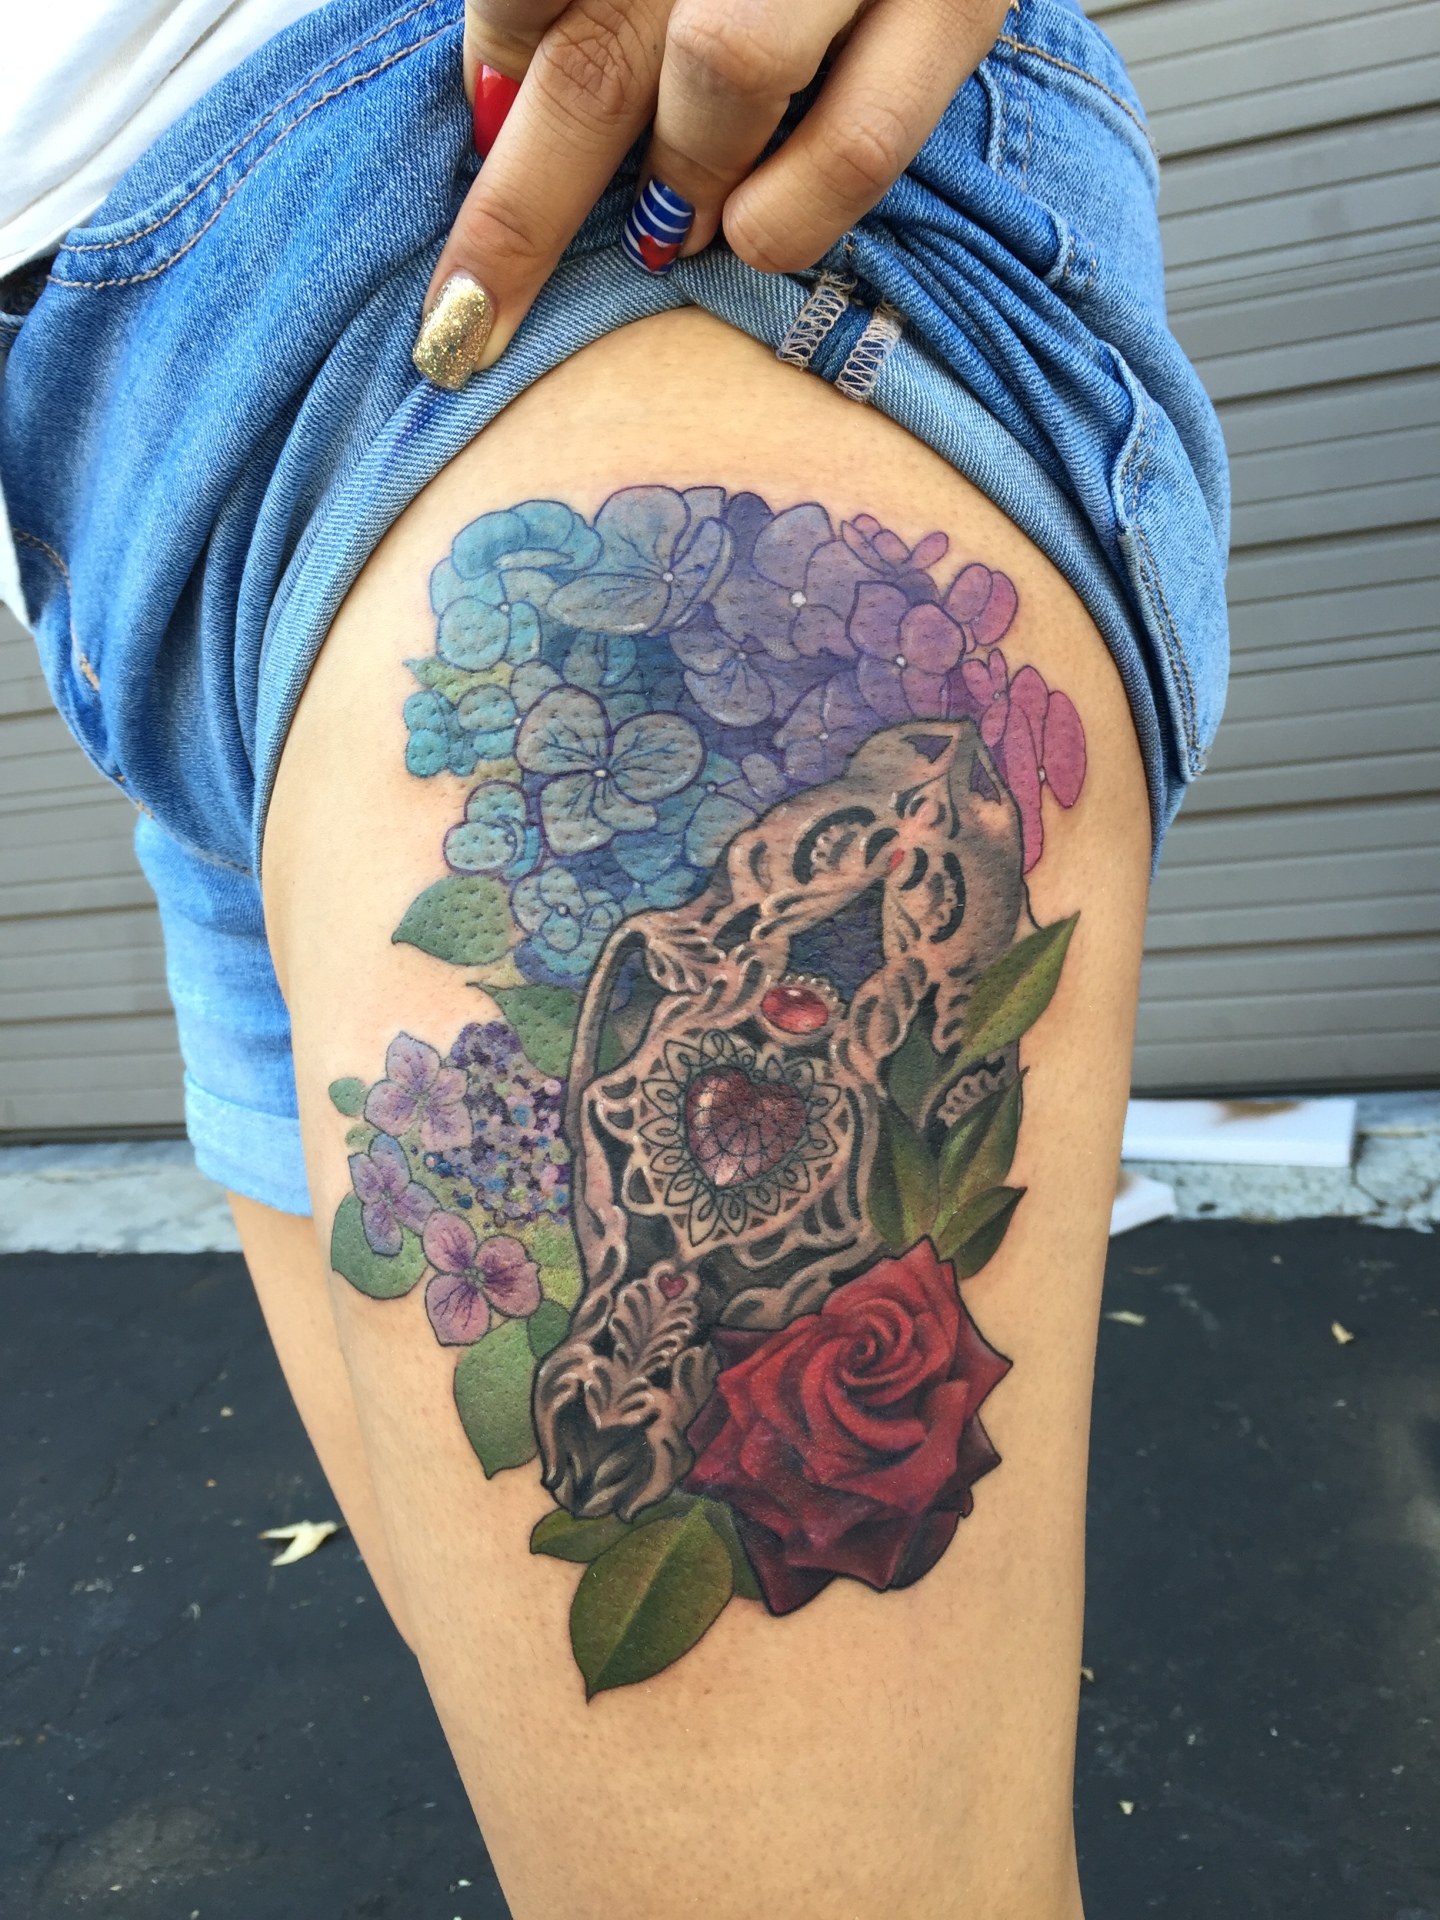 carved skull, tattoo, art, rose, floral, neotraditional, losangeles, orange county